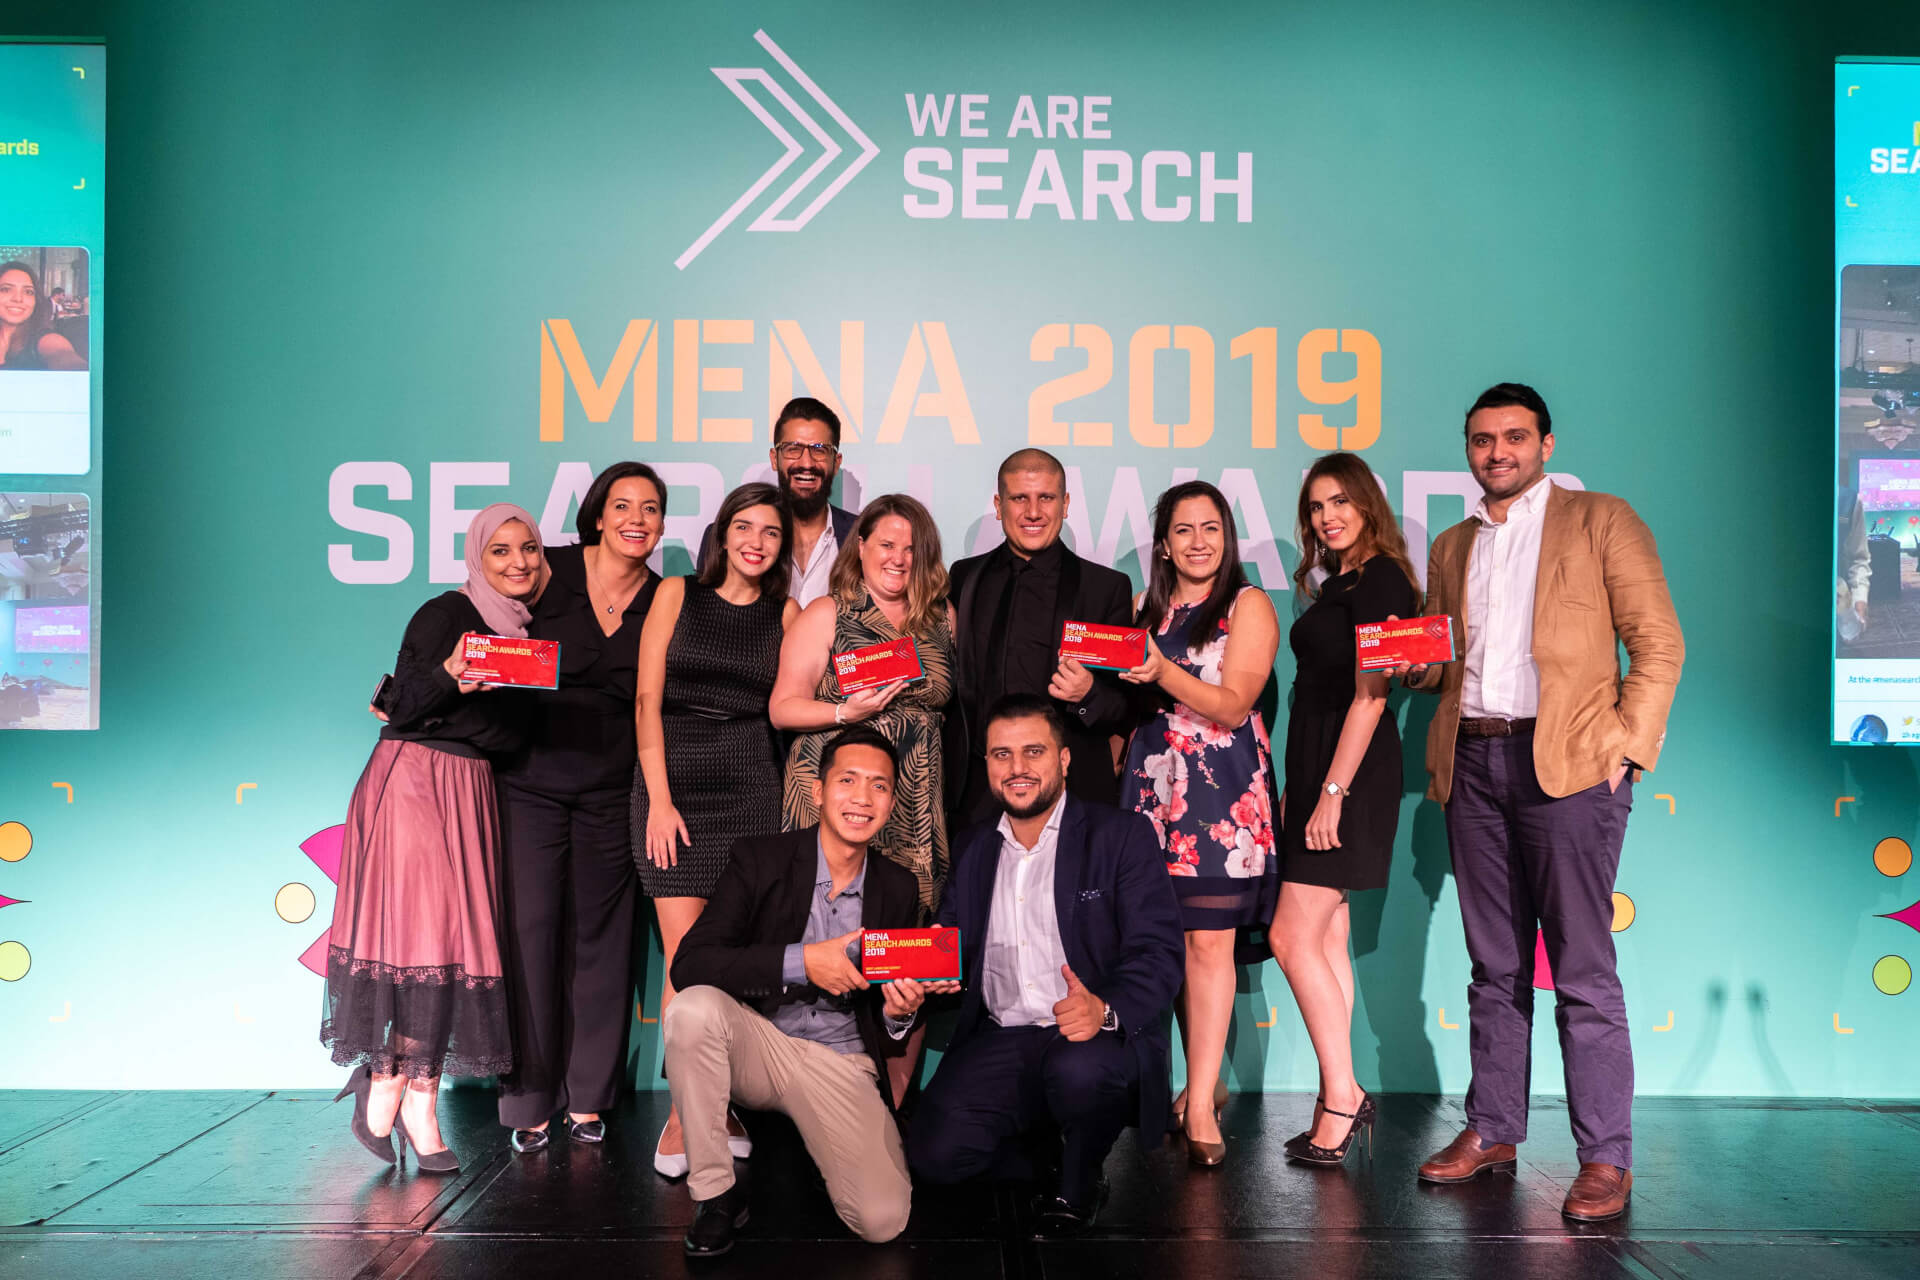 Chain Reaction Steals The Spotlight at The MENA Search Awards 2019